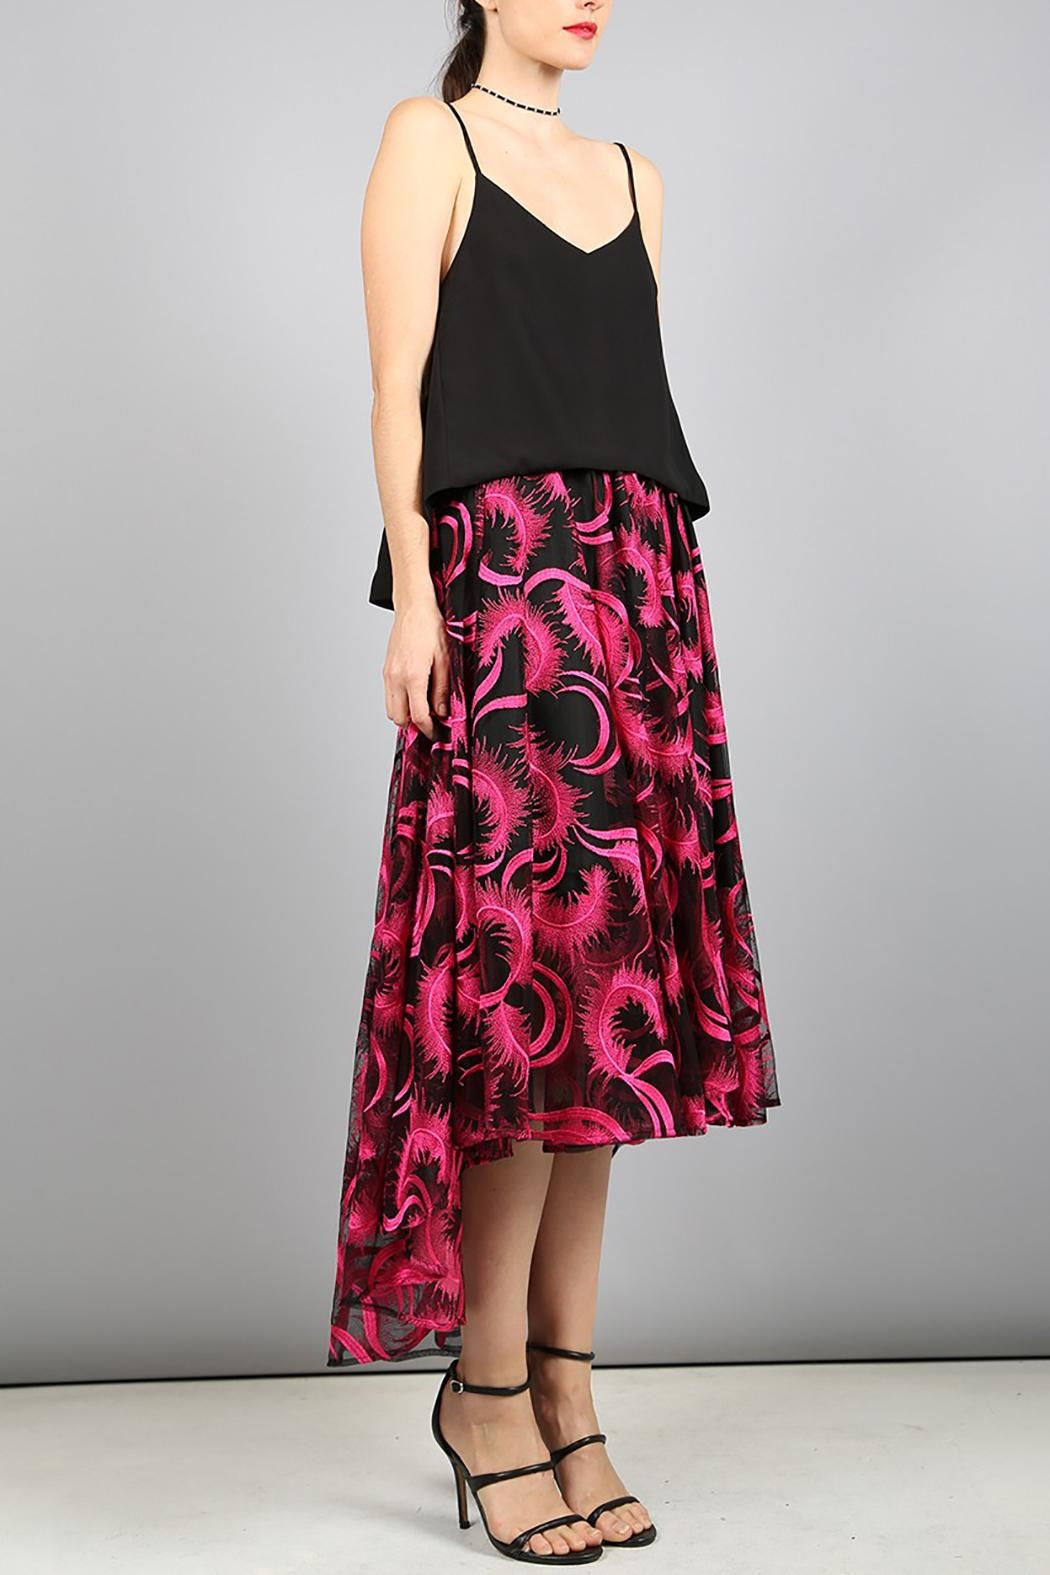 BEULAH STYLE Beulah Embroidery Skirt - Front Full Image